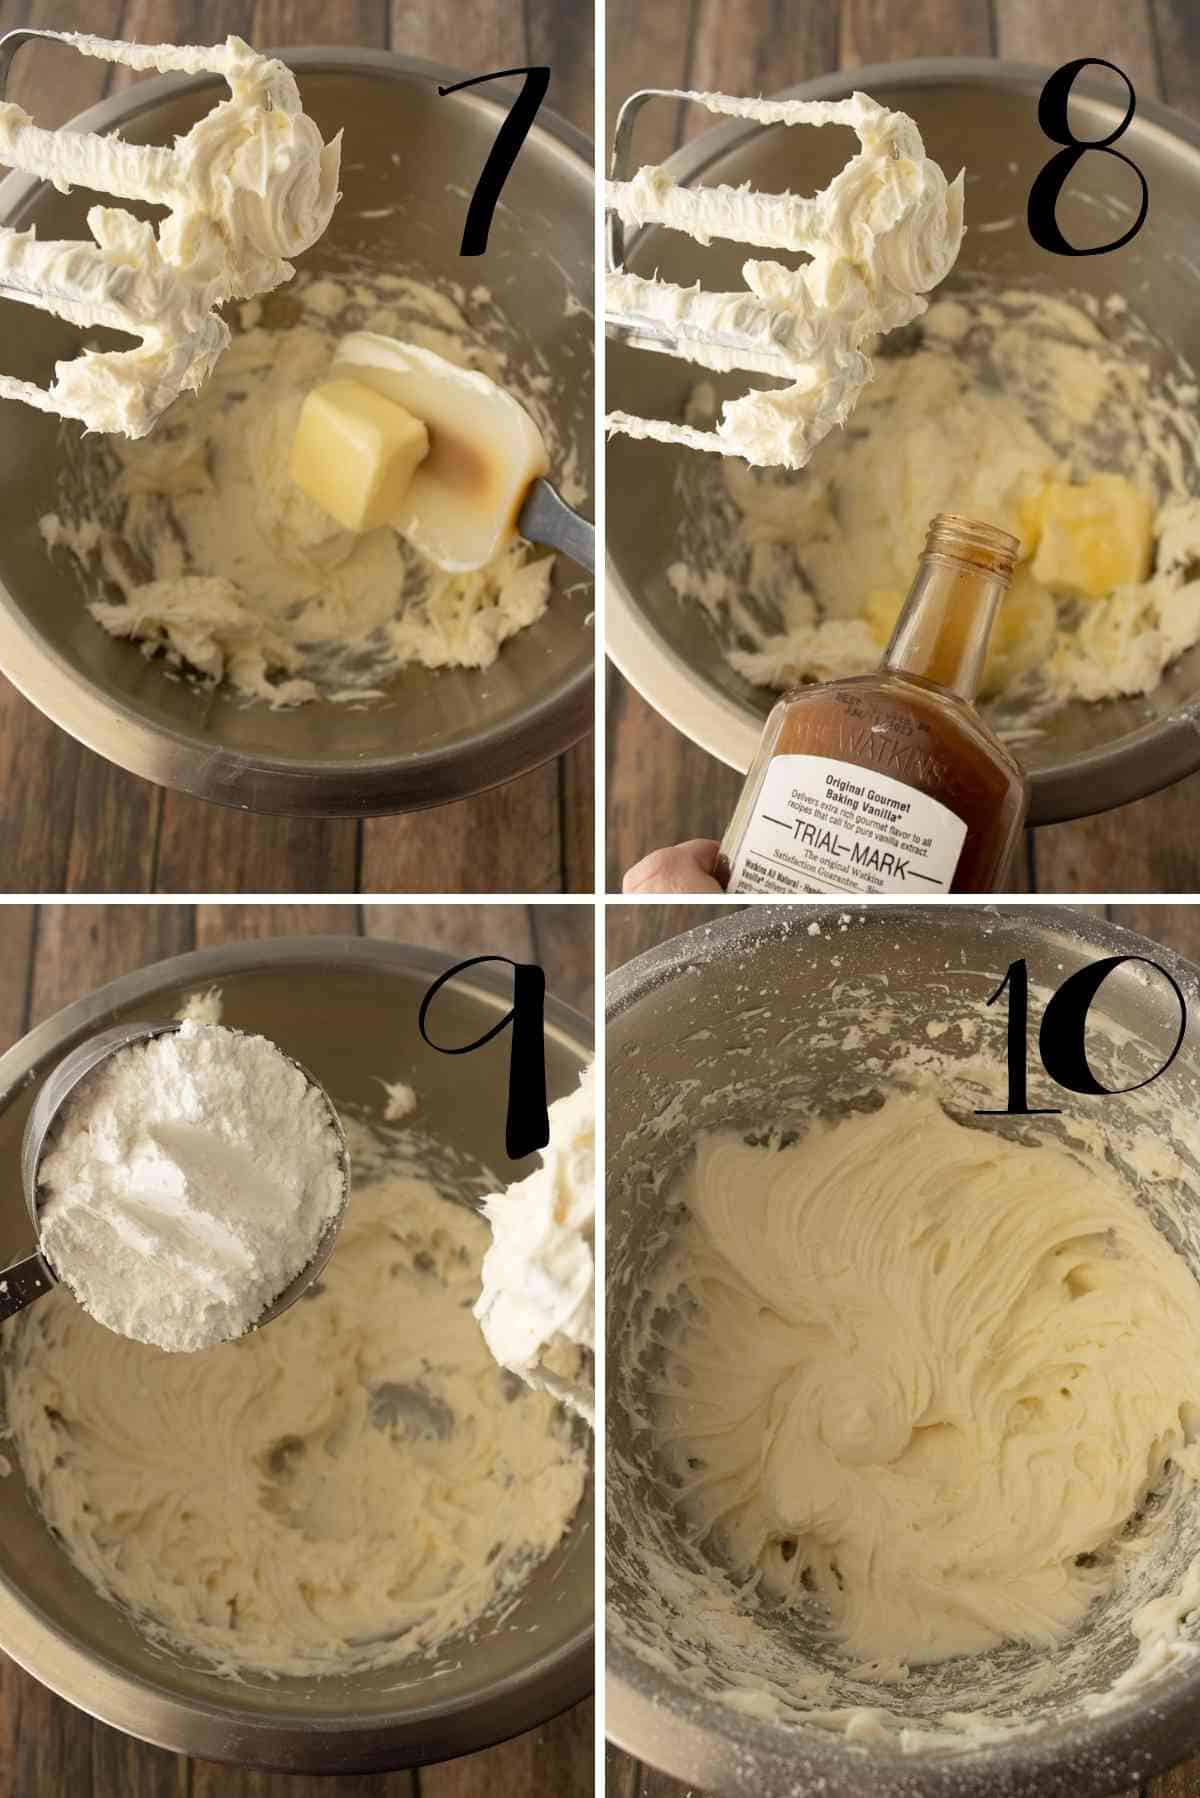 Beat the frosting ingredients together well.